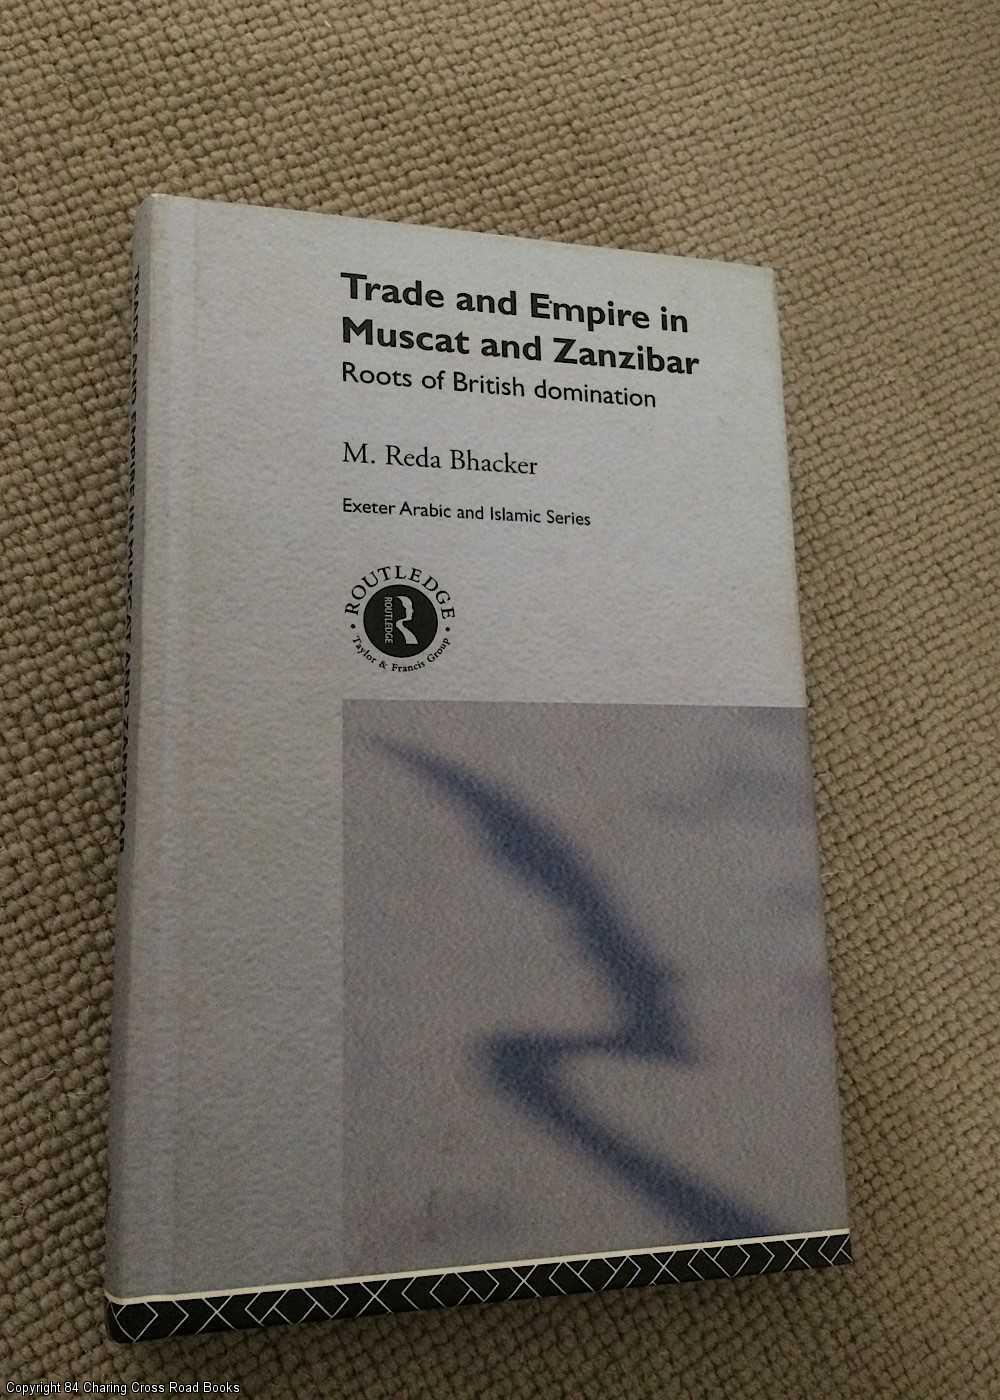 BHACKER, M. REDA - Trade and Empire in Muscat and Zanzibar: The Roots of British Domination